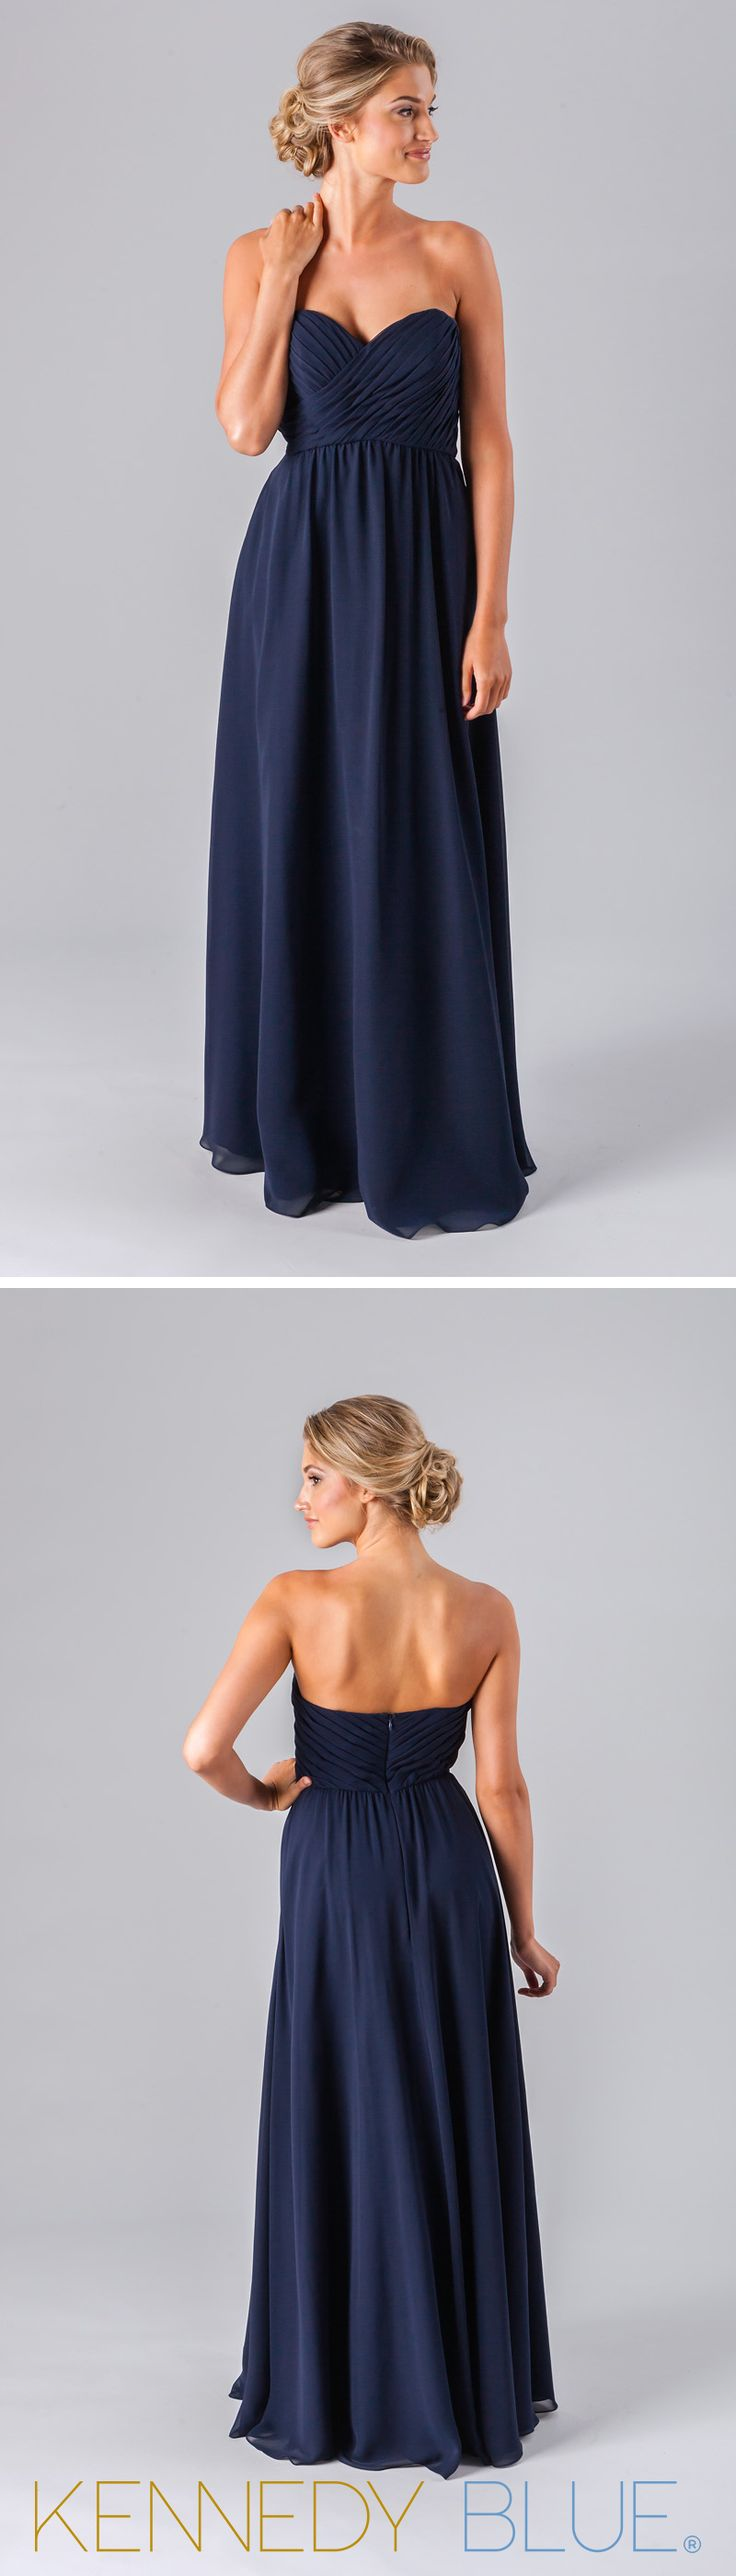 Kennedy Blue Parker is a classic strapless chiffon bridesmaid dress that will look great on each of your girls.